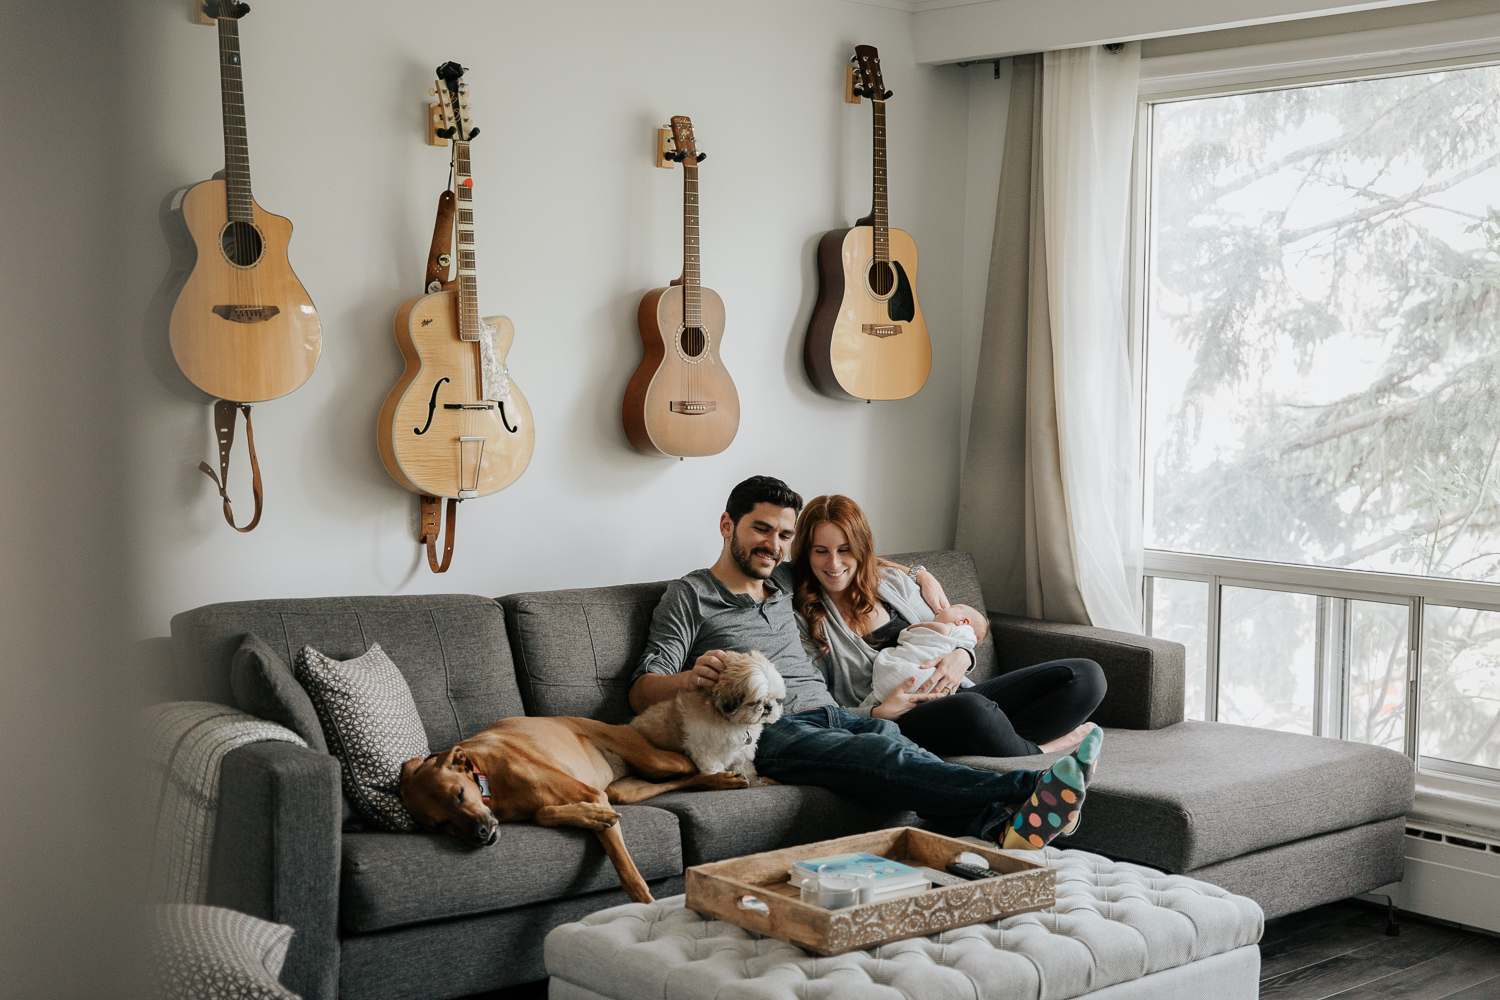 new parents sitting on living room couch, mom holding 2 week old baby boy, large and small dog lying on couch next to father, mother smiling at them - York Region In-Home Photography